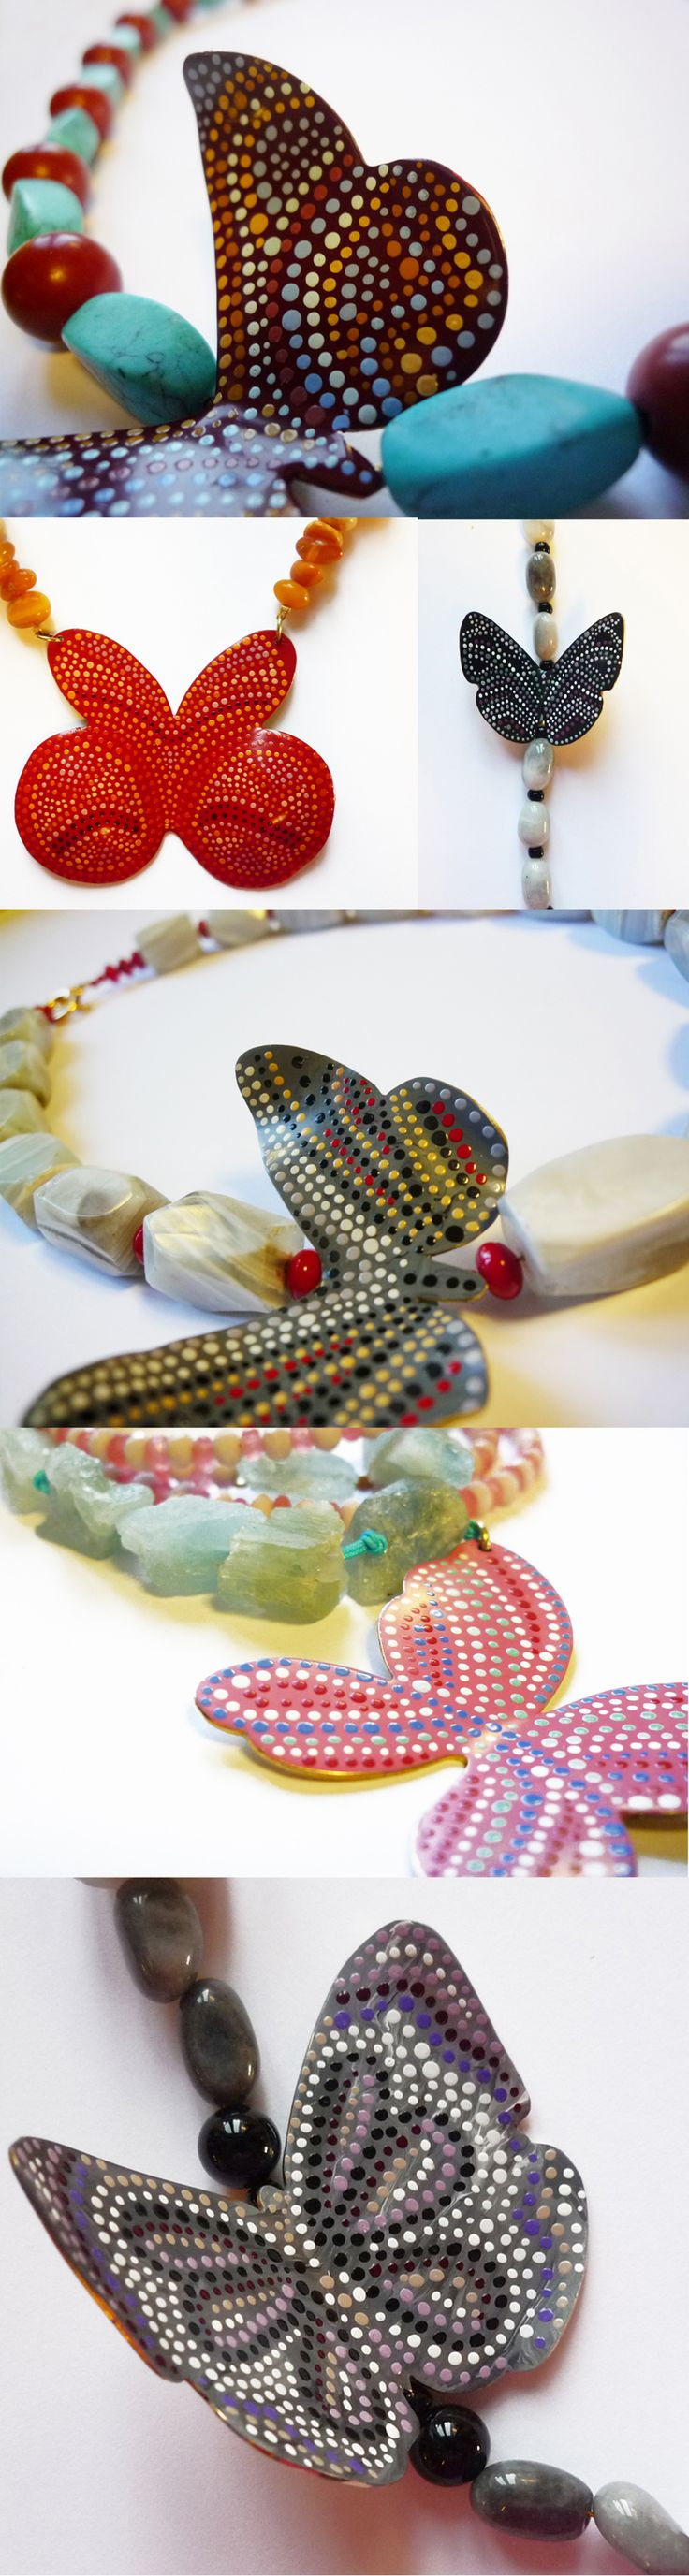 A selection of detailed photographs of handmade and handpainted statement necklaces with semi precious beads to wear all day long. Explore a selection of necklaces and not only on our site http://www.facebook.com/LillysPapillon